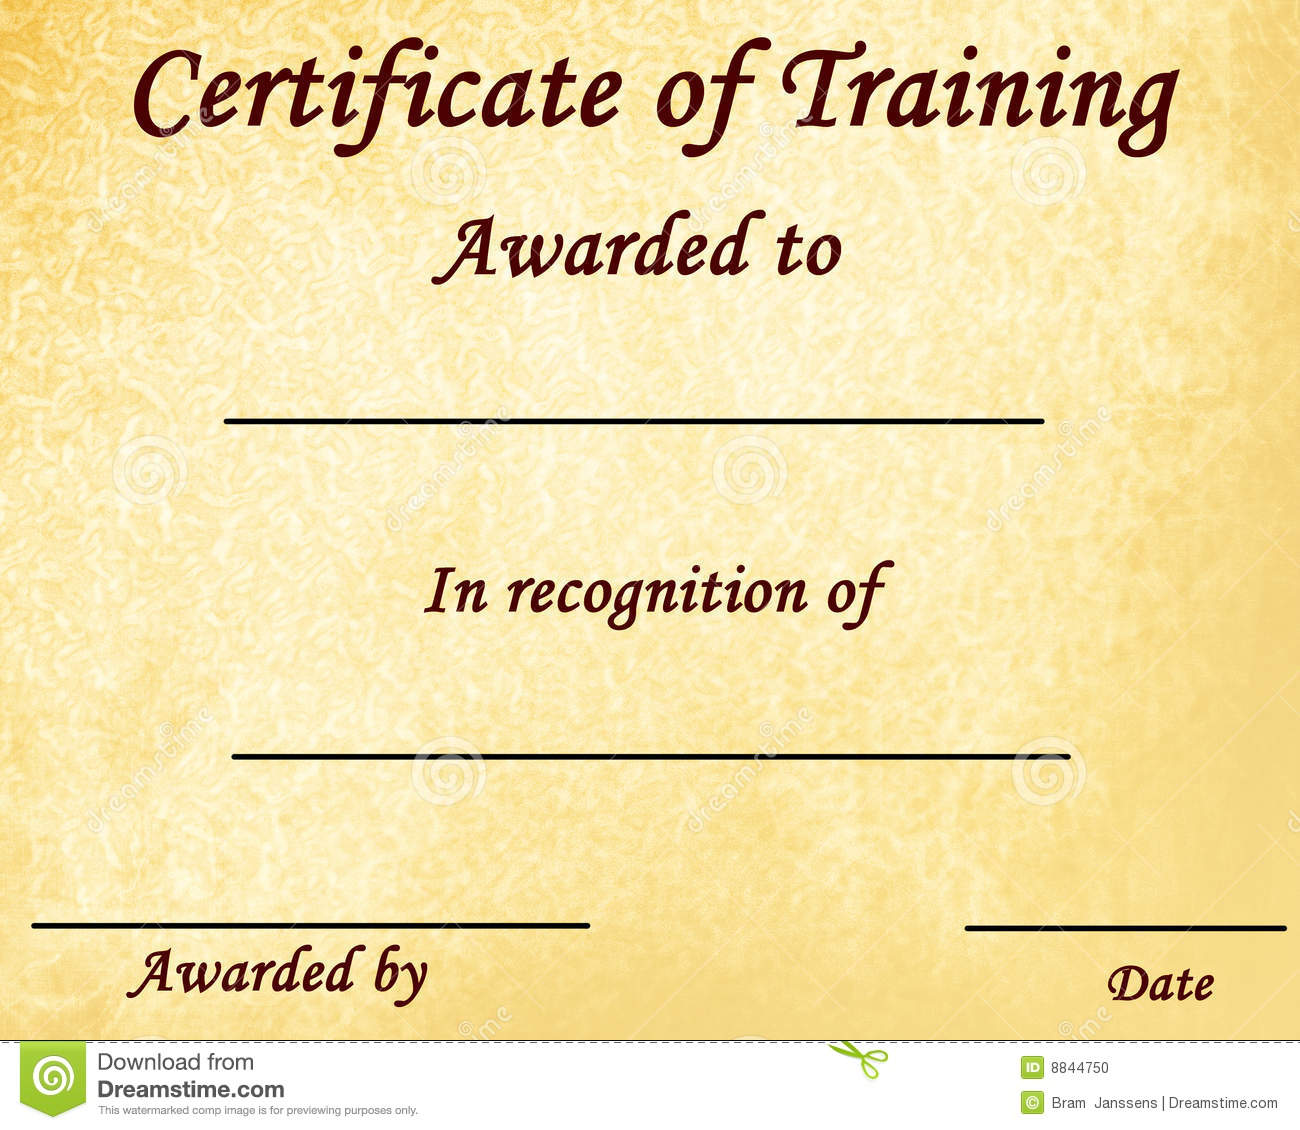 Doc580456 Certificate of Training Template 6 Free Training – Certificate for Training